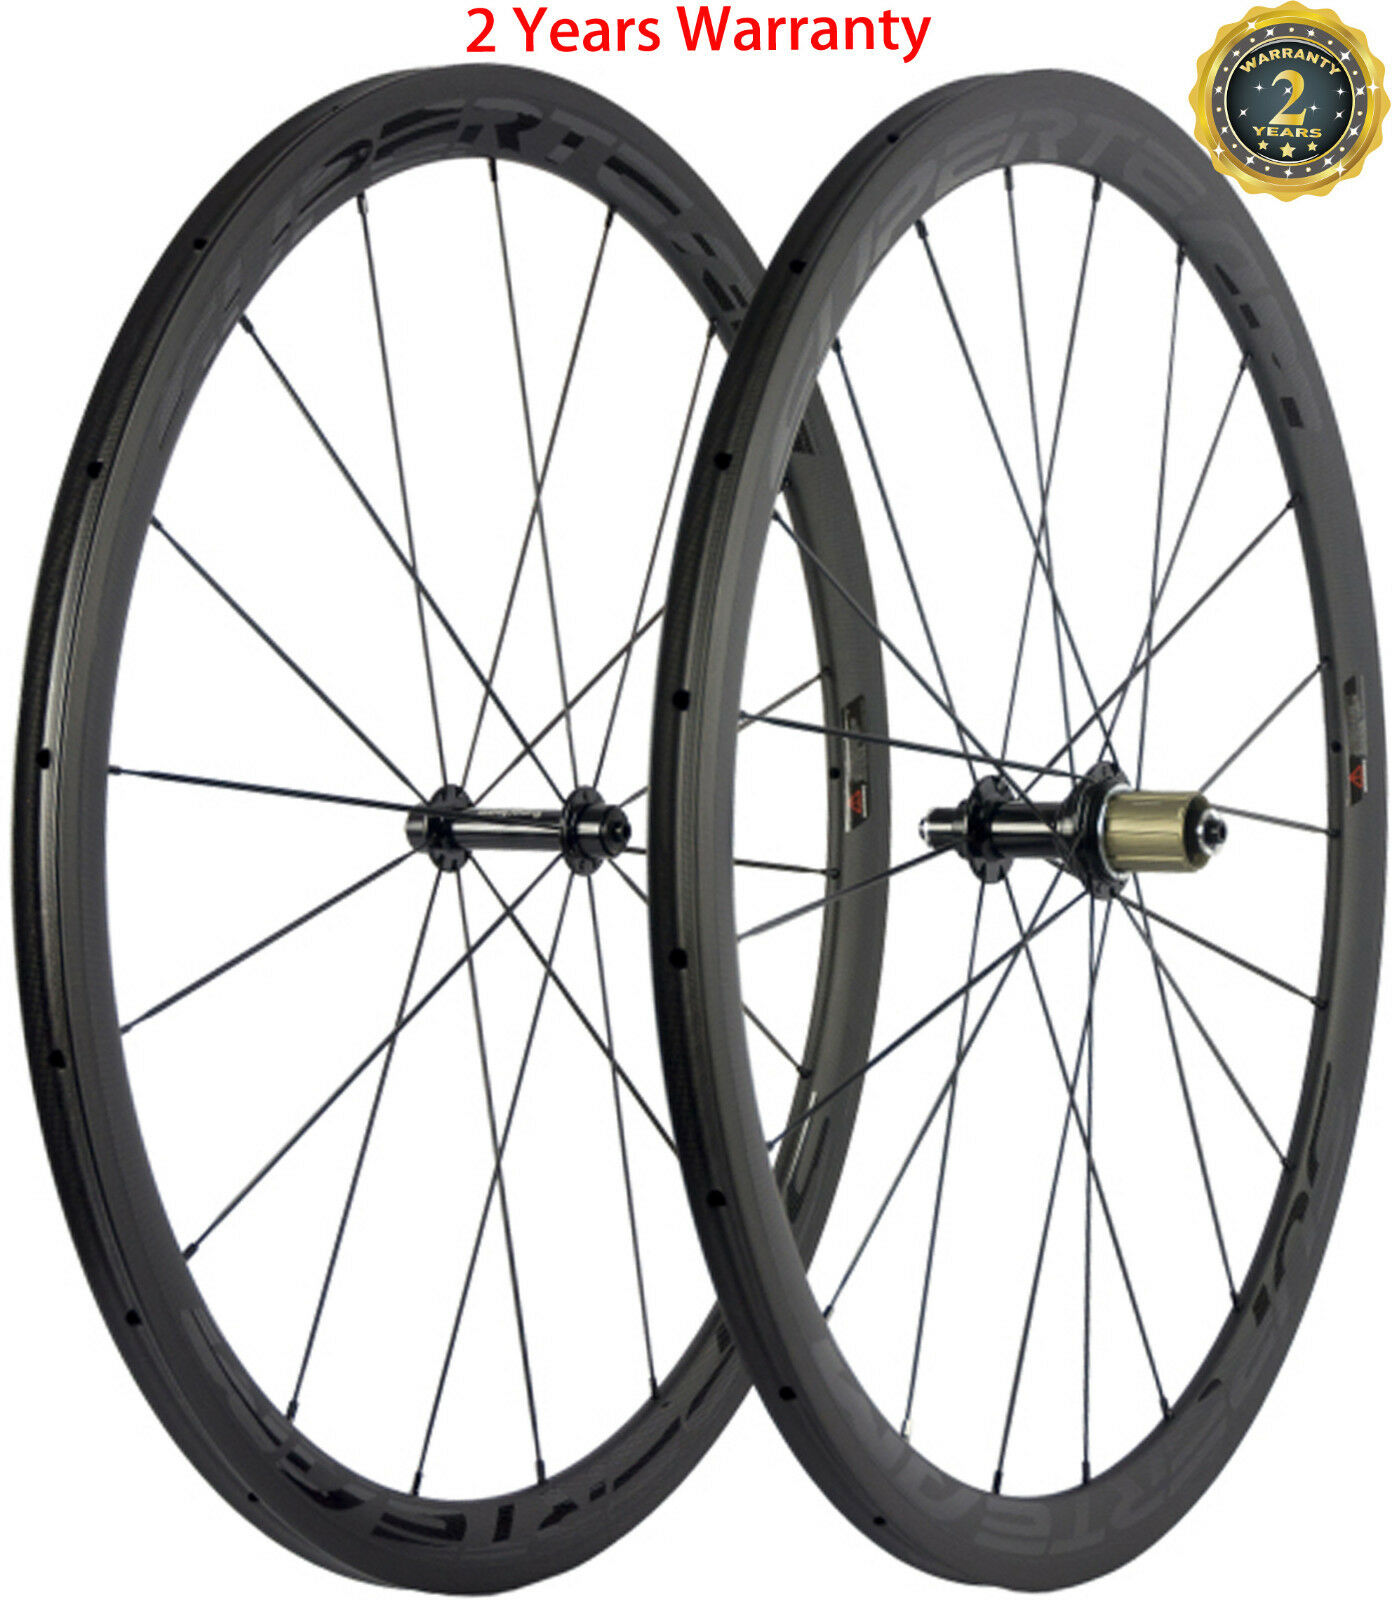 Superteam 38mm Tubular Road Bike Wheelset R13 Hub Carbon Wheels 700C Bike Wheel